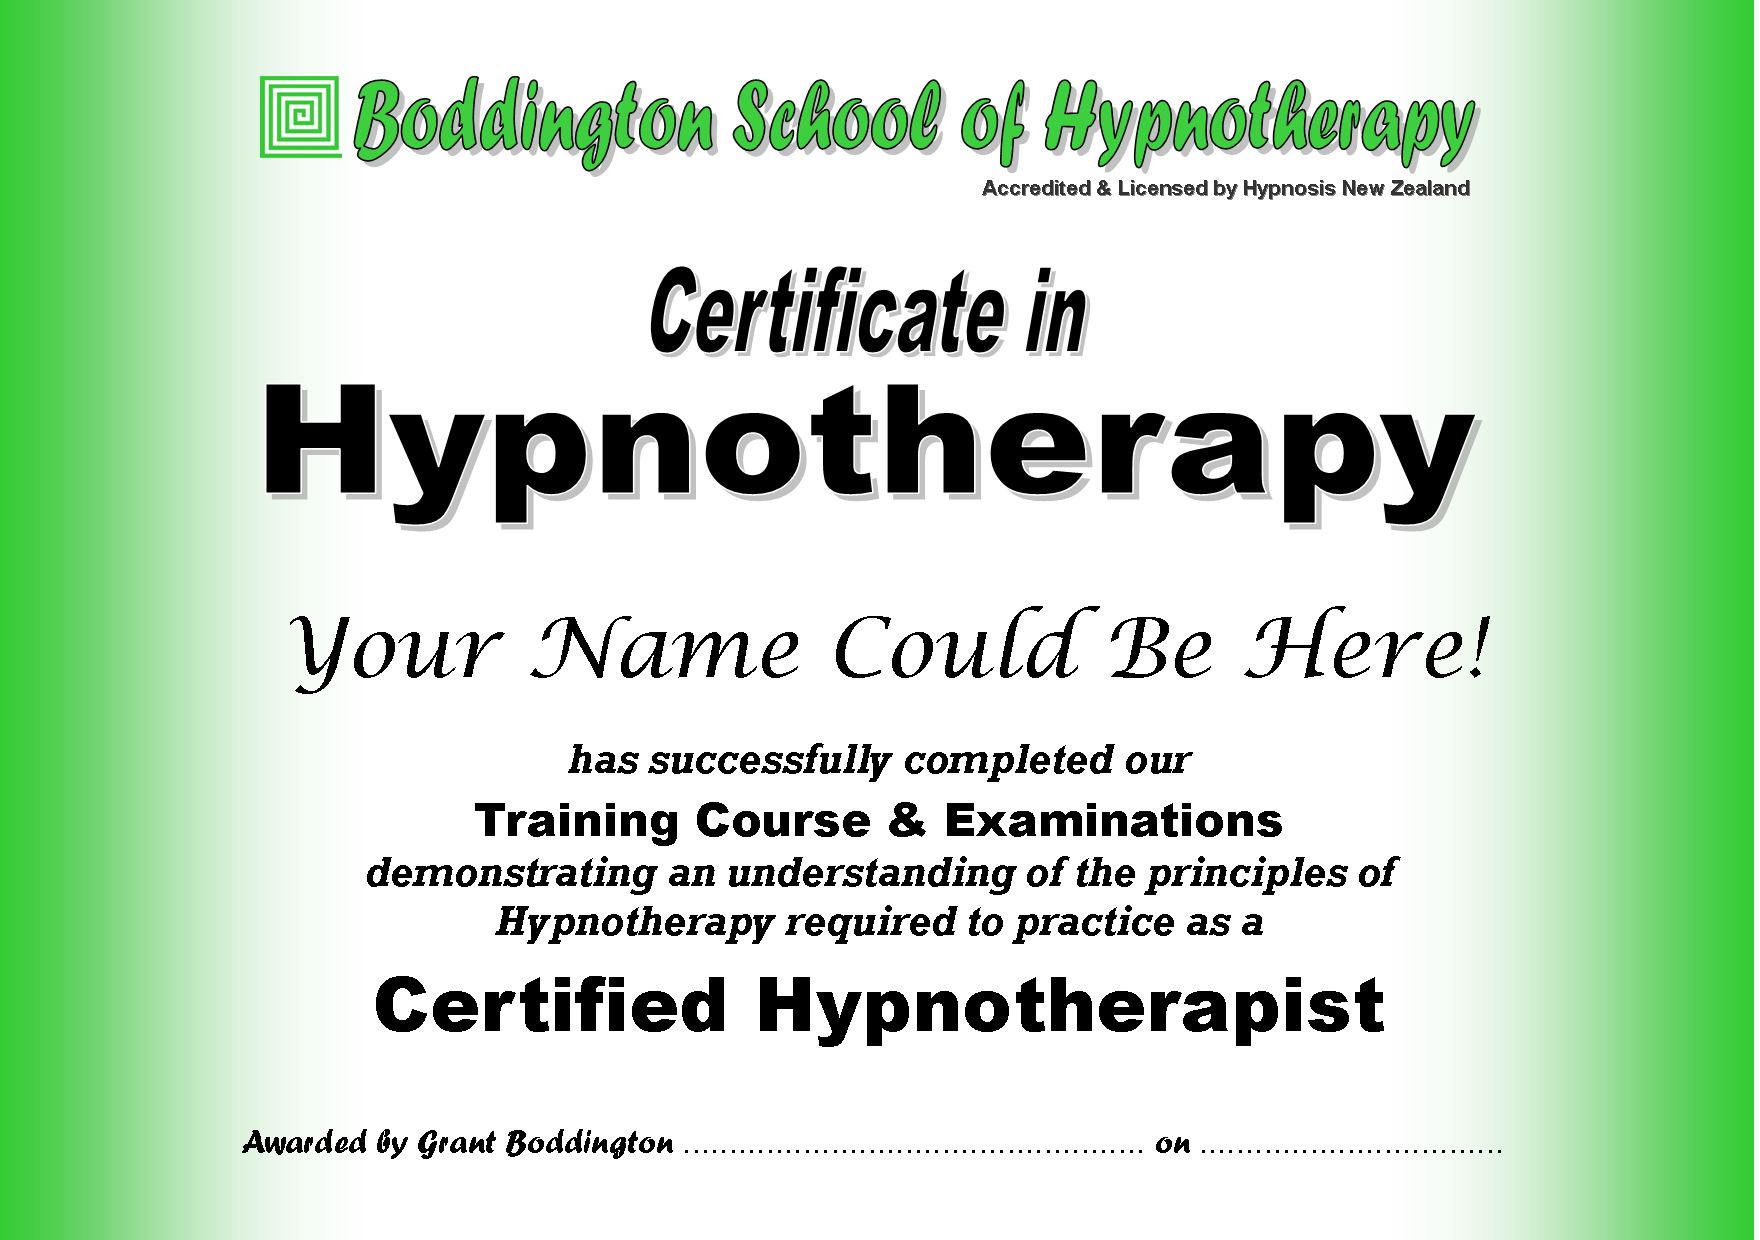 Certificate in Hypnotherapy